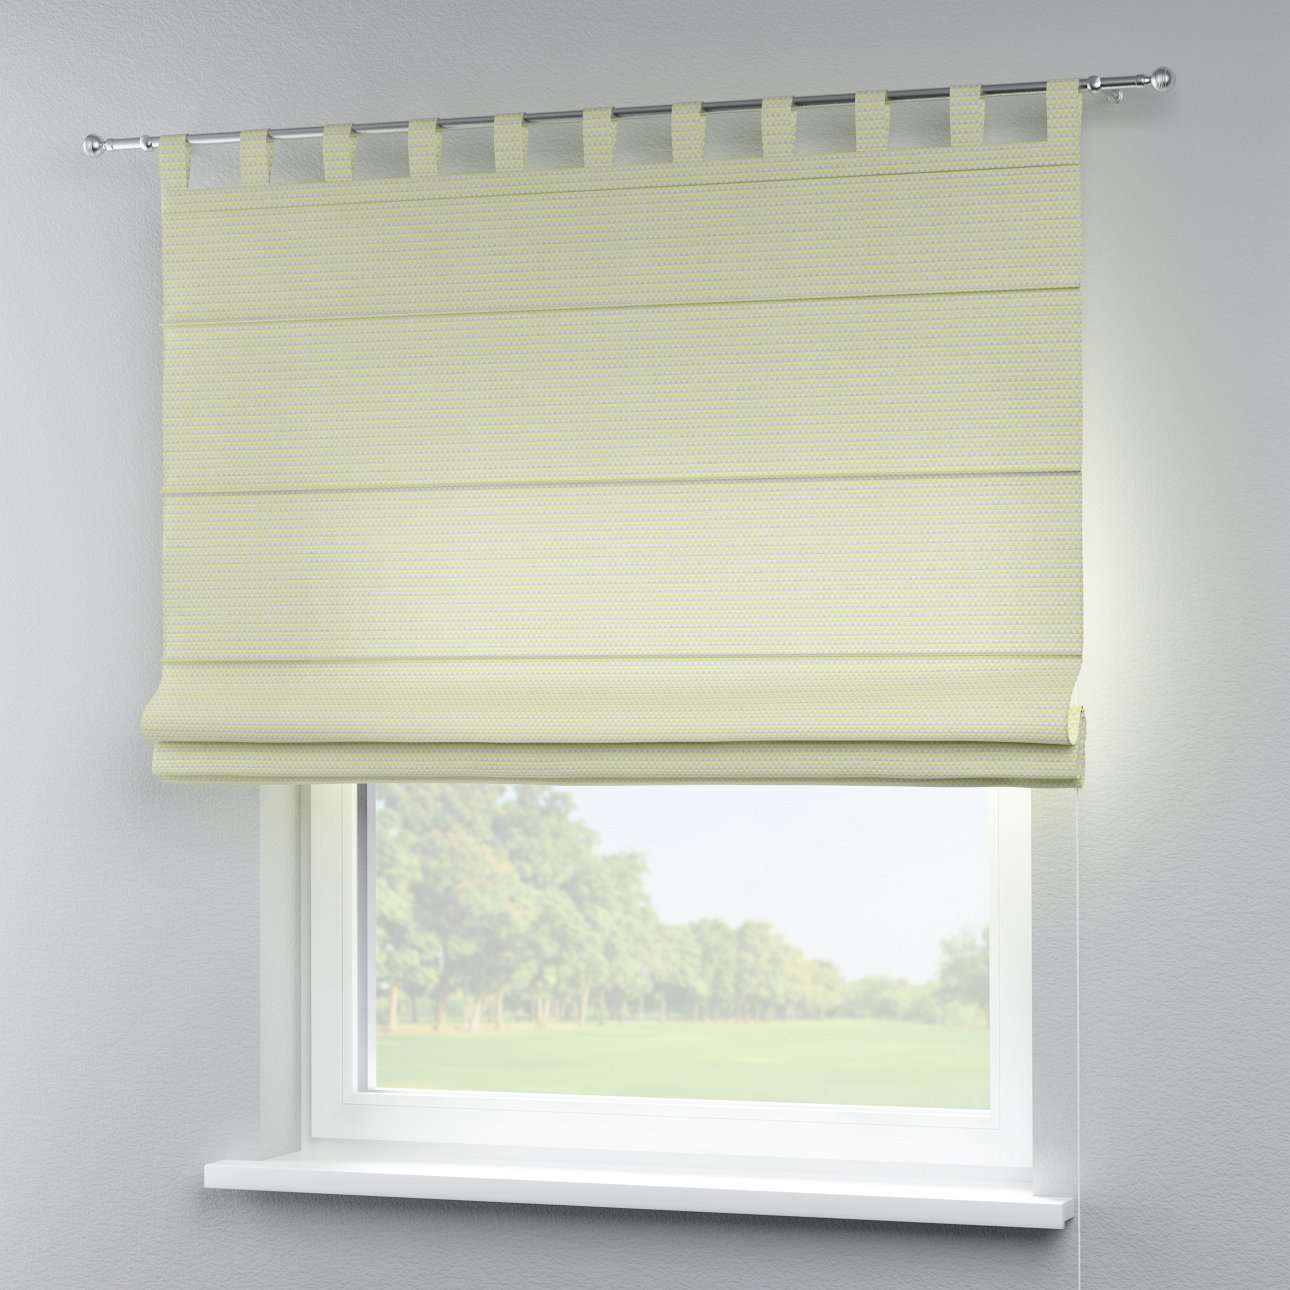 Verona tab top roman blind 80 x 170 cm (31.5 x 67 inch) in collection Rustica, fabric: 140-34